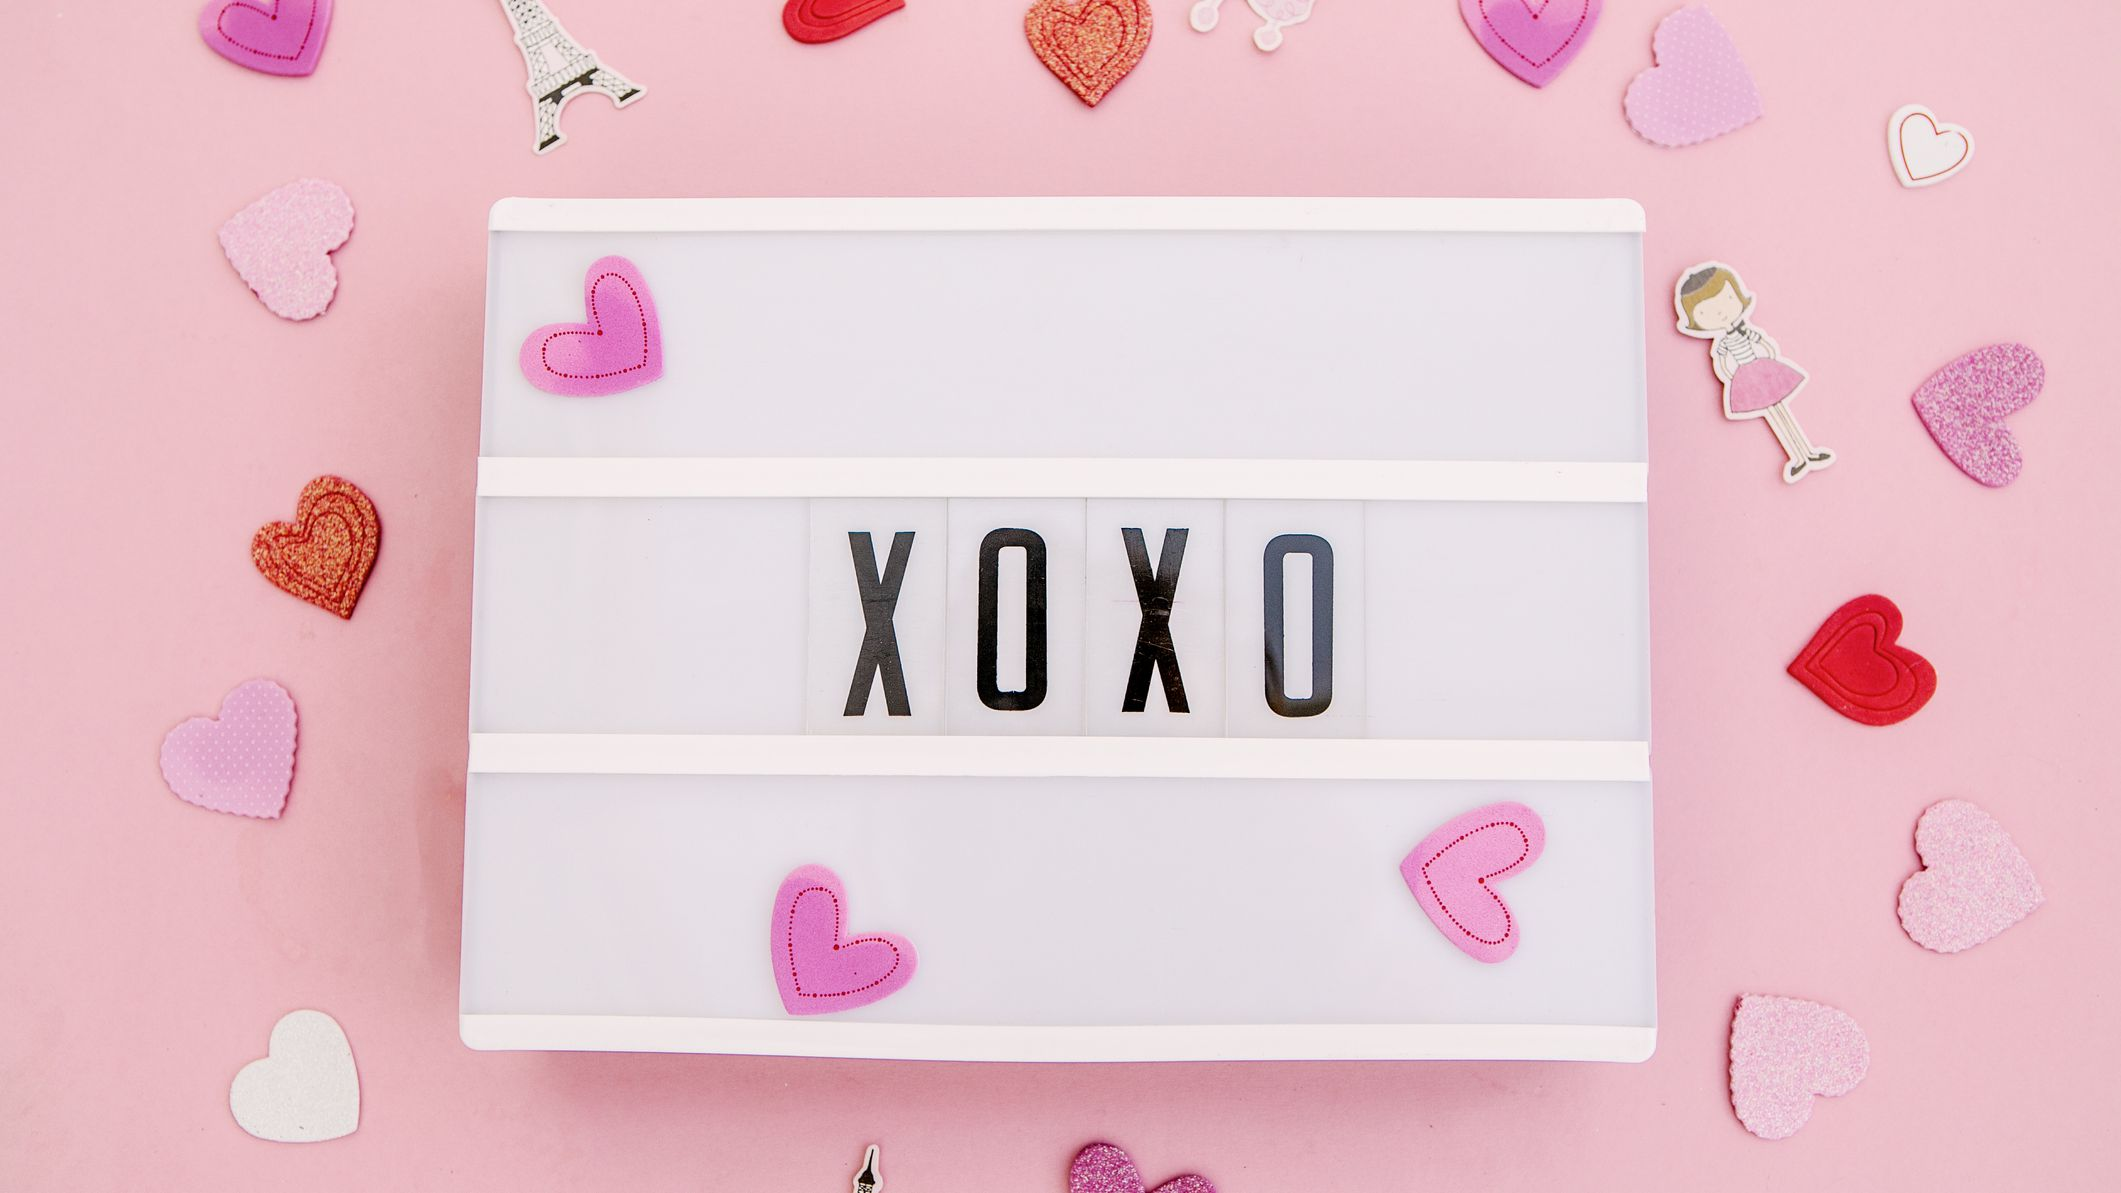 Xoxo meaning in text